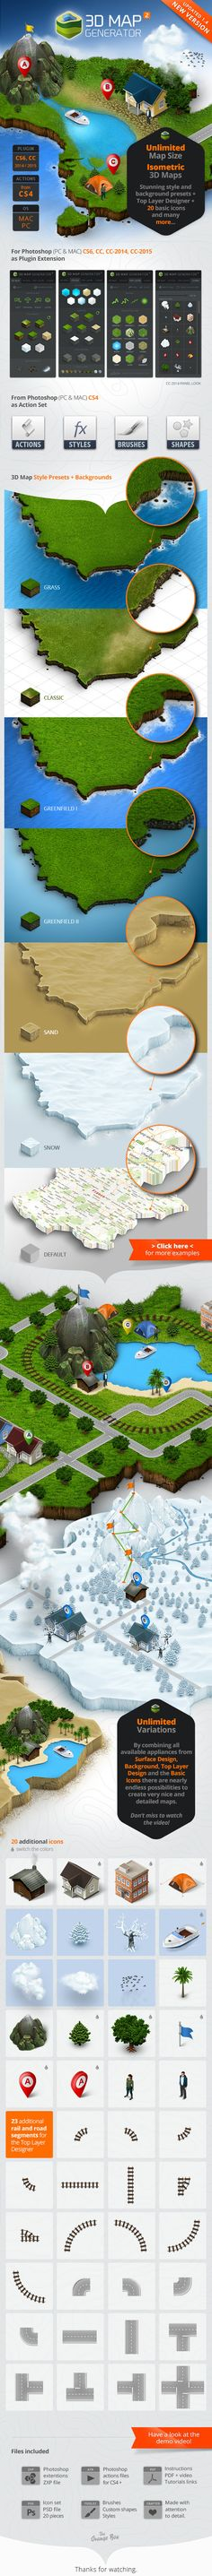 #3D #Map Generator 2 - #Isometric On at http://graphicriver.net/item/3d-map-generator-2-isometric/7667950?ref=graphicon